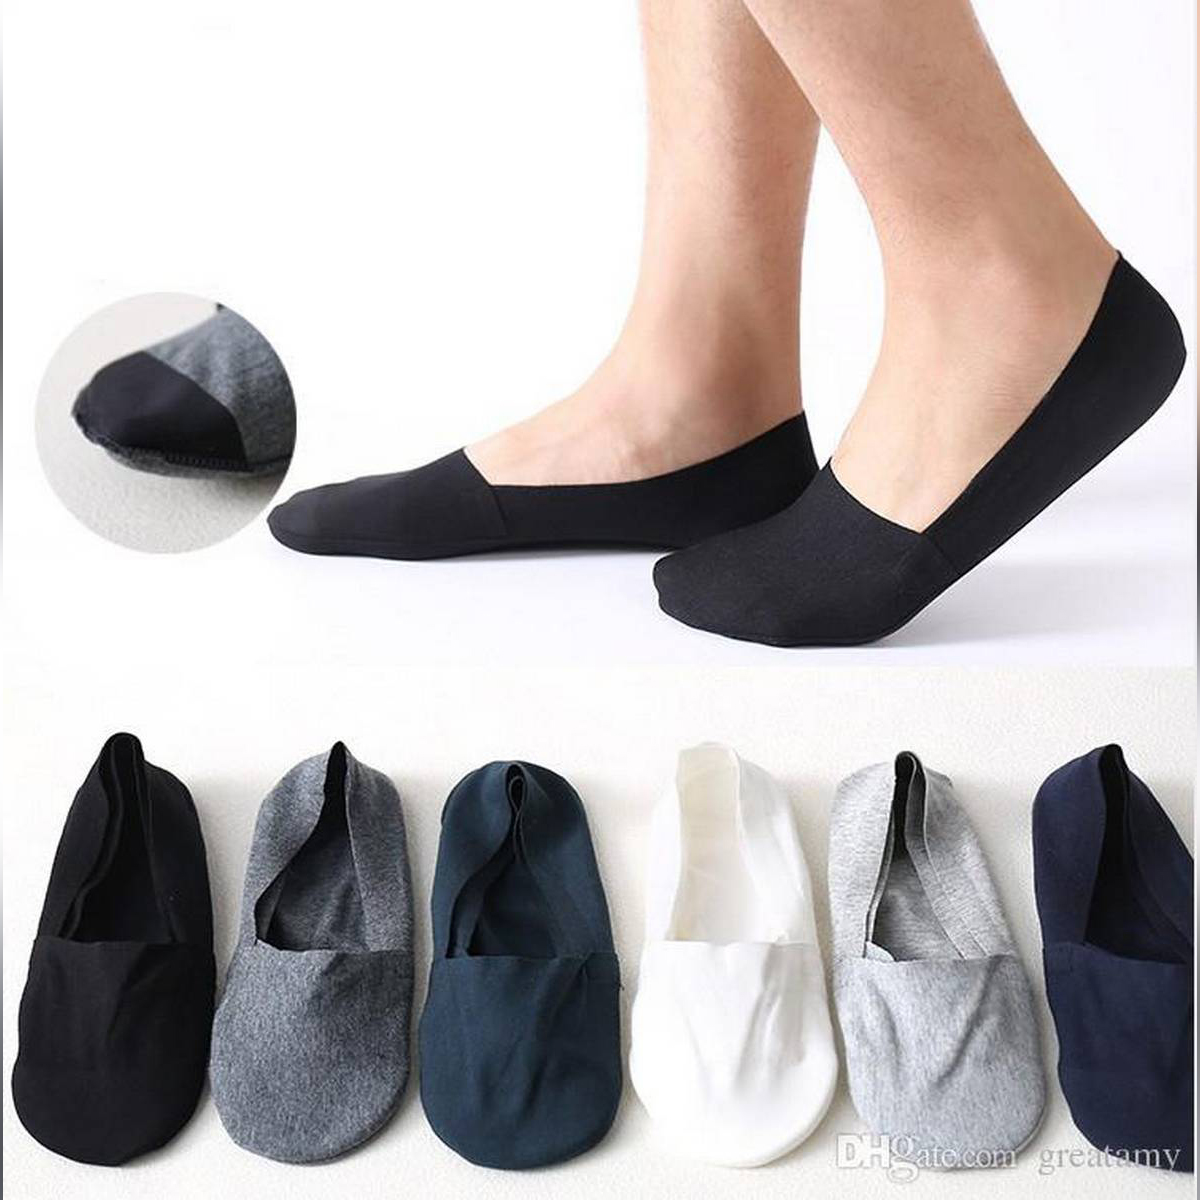 Pack of 3- Casual Soft Low Cut Socks Loafer Socks Invisible Socks for Men and Women